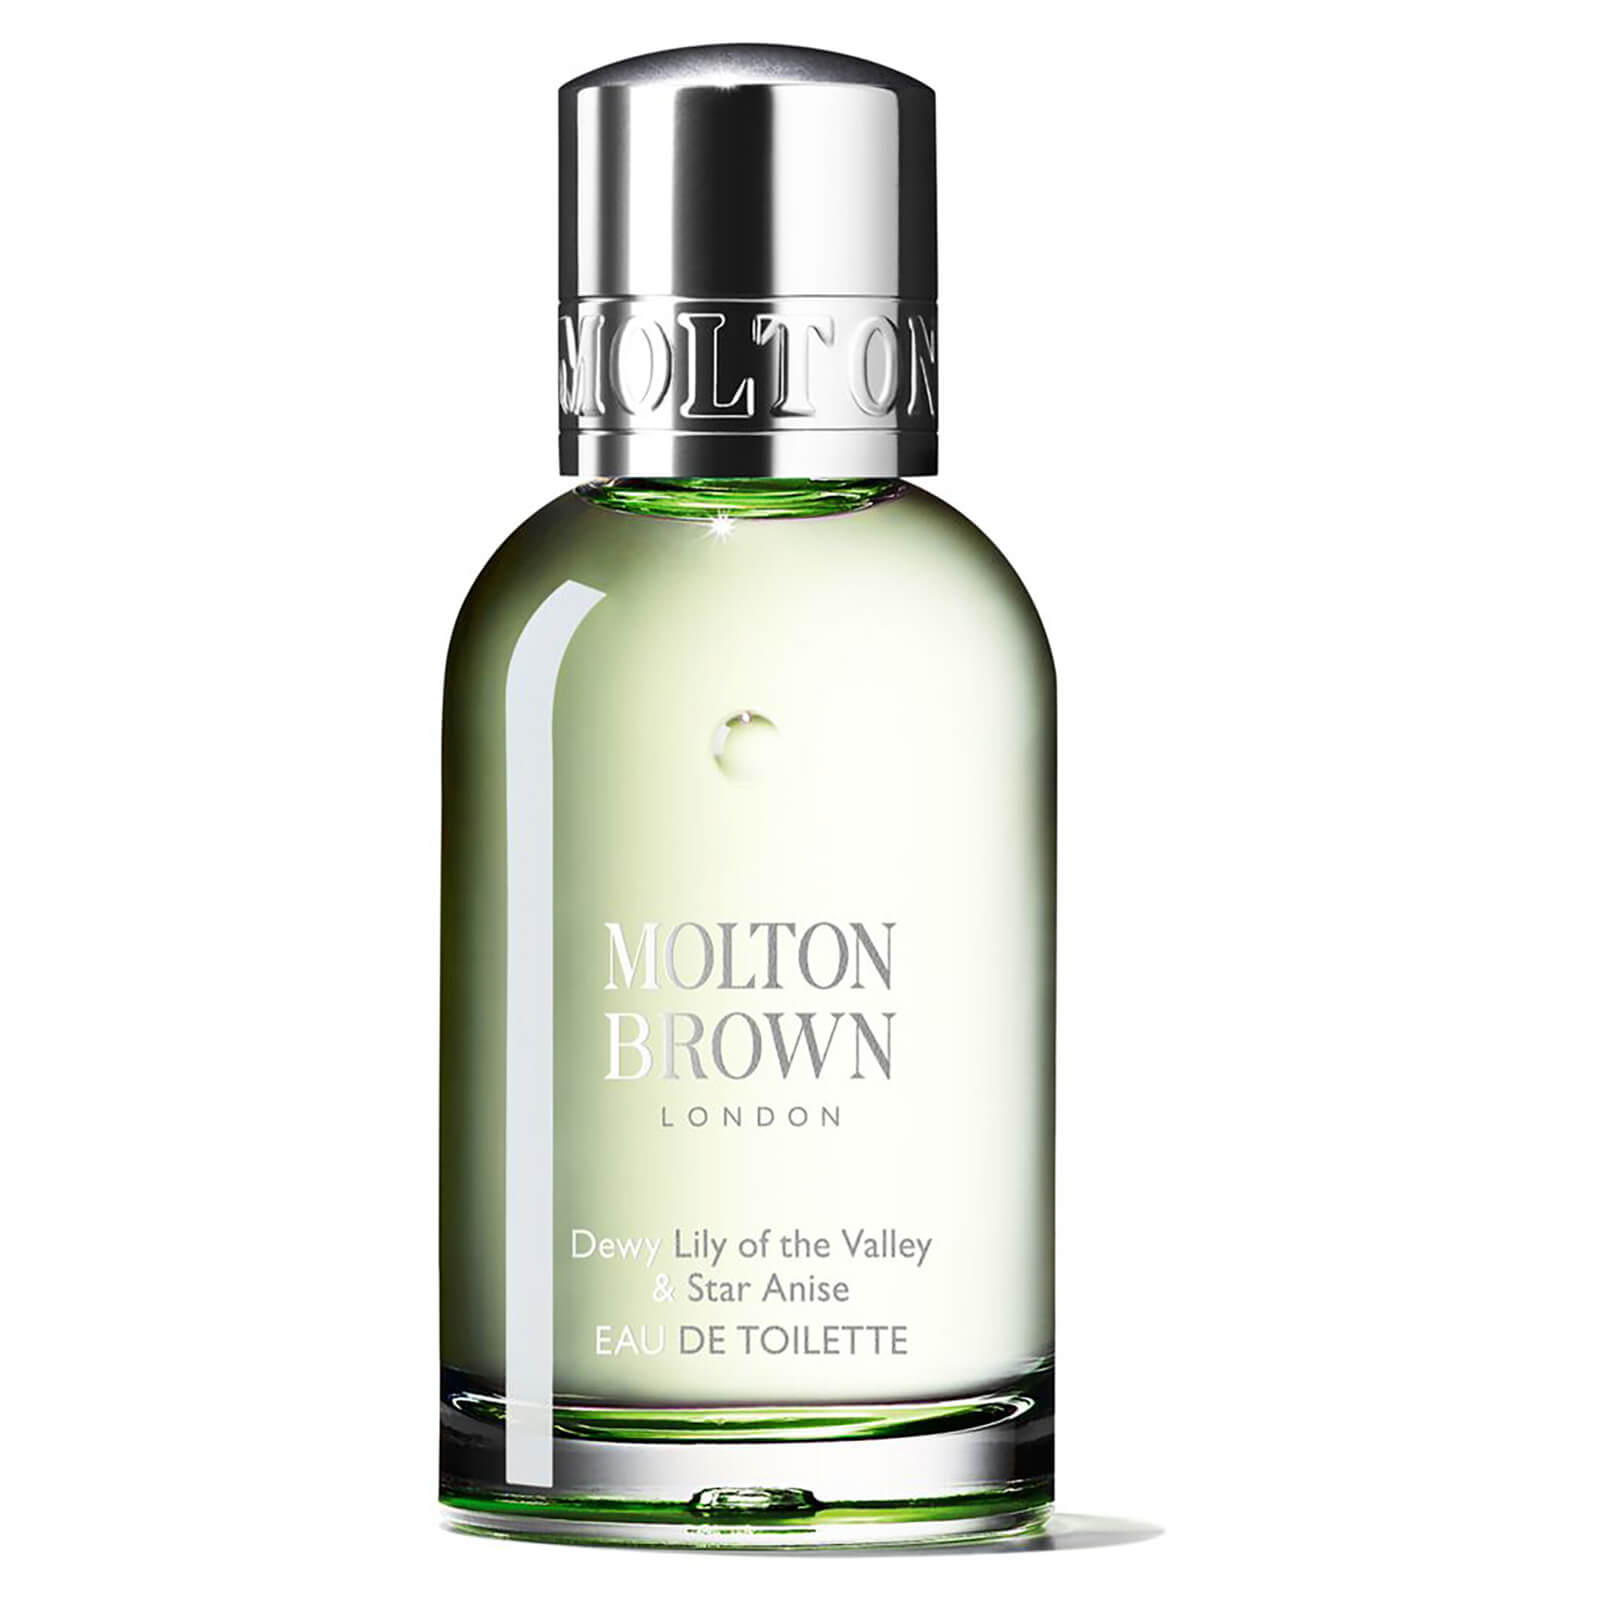 1af4c7ad020e0 Molton Brown Dewy Lily of the Valley   Star Anise Eau de Toilette 50ml